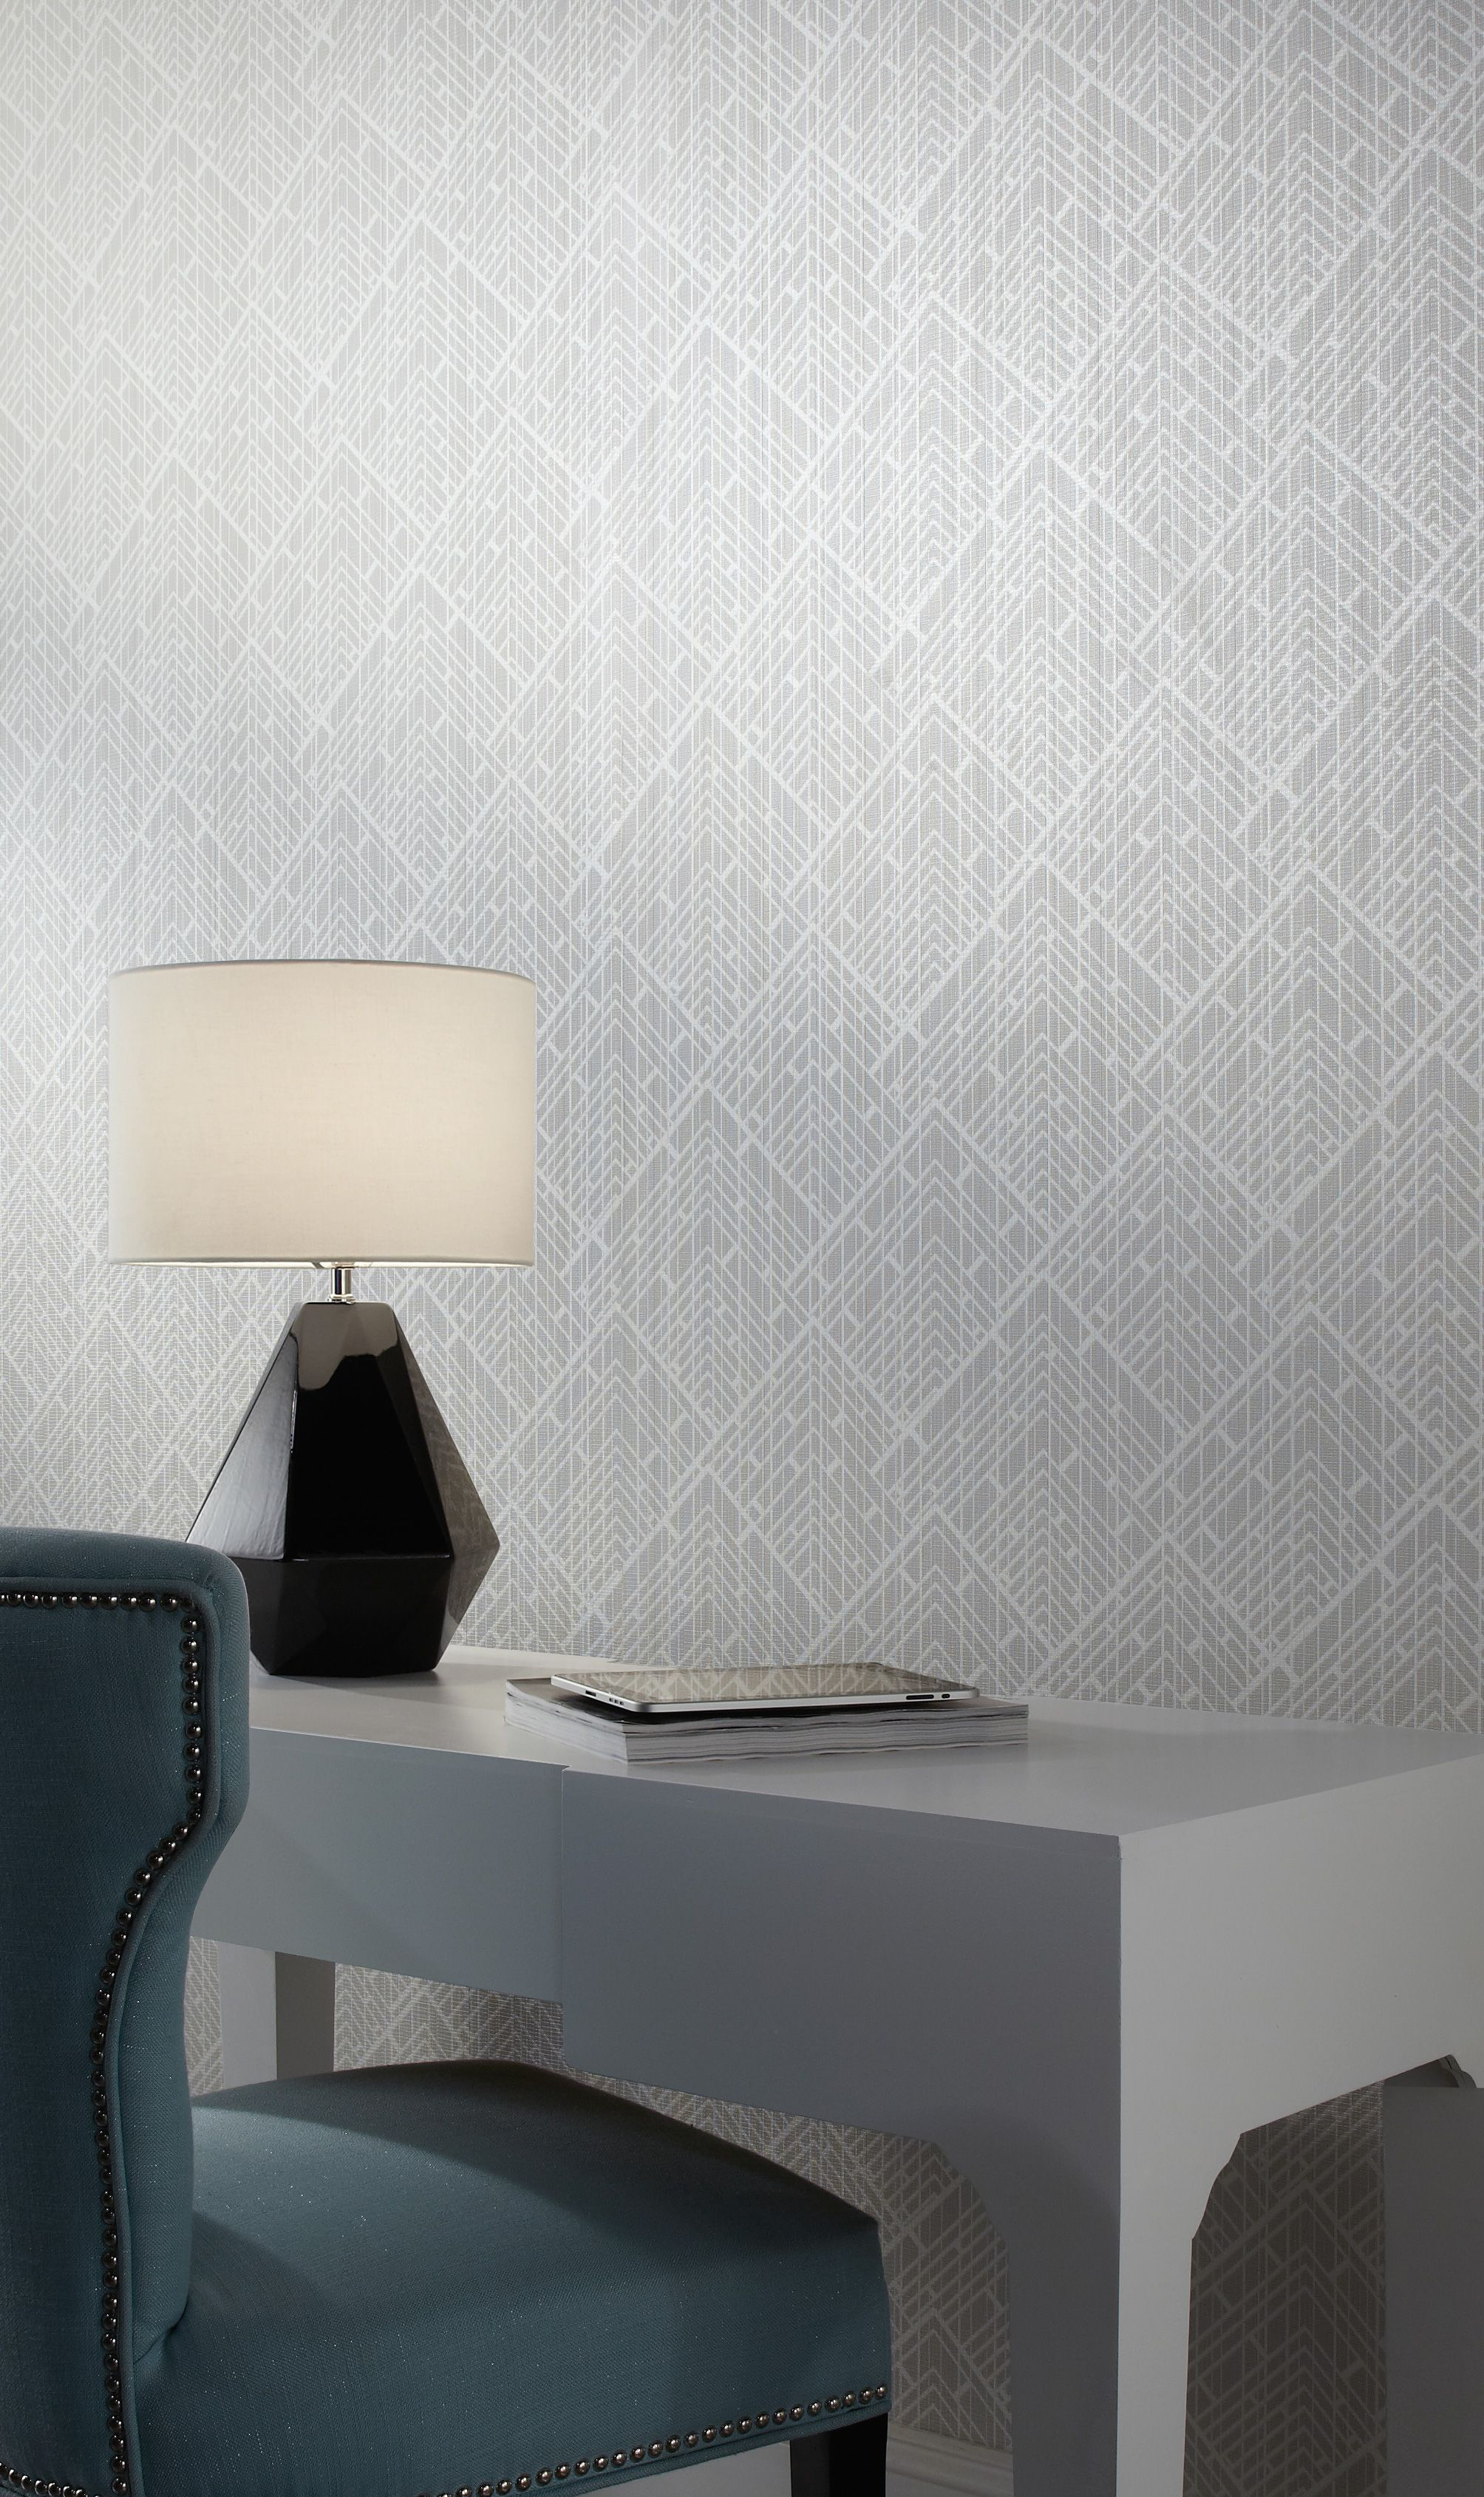 Captivating D.L. Couch Wallcovering And Fabrics   IRVING Pattern   SKU SG2588   Stacy  Garcia Collection